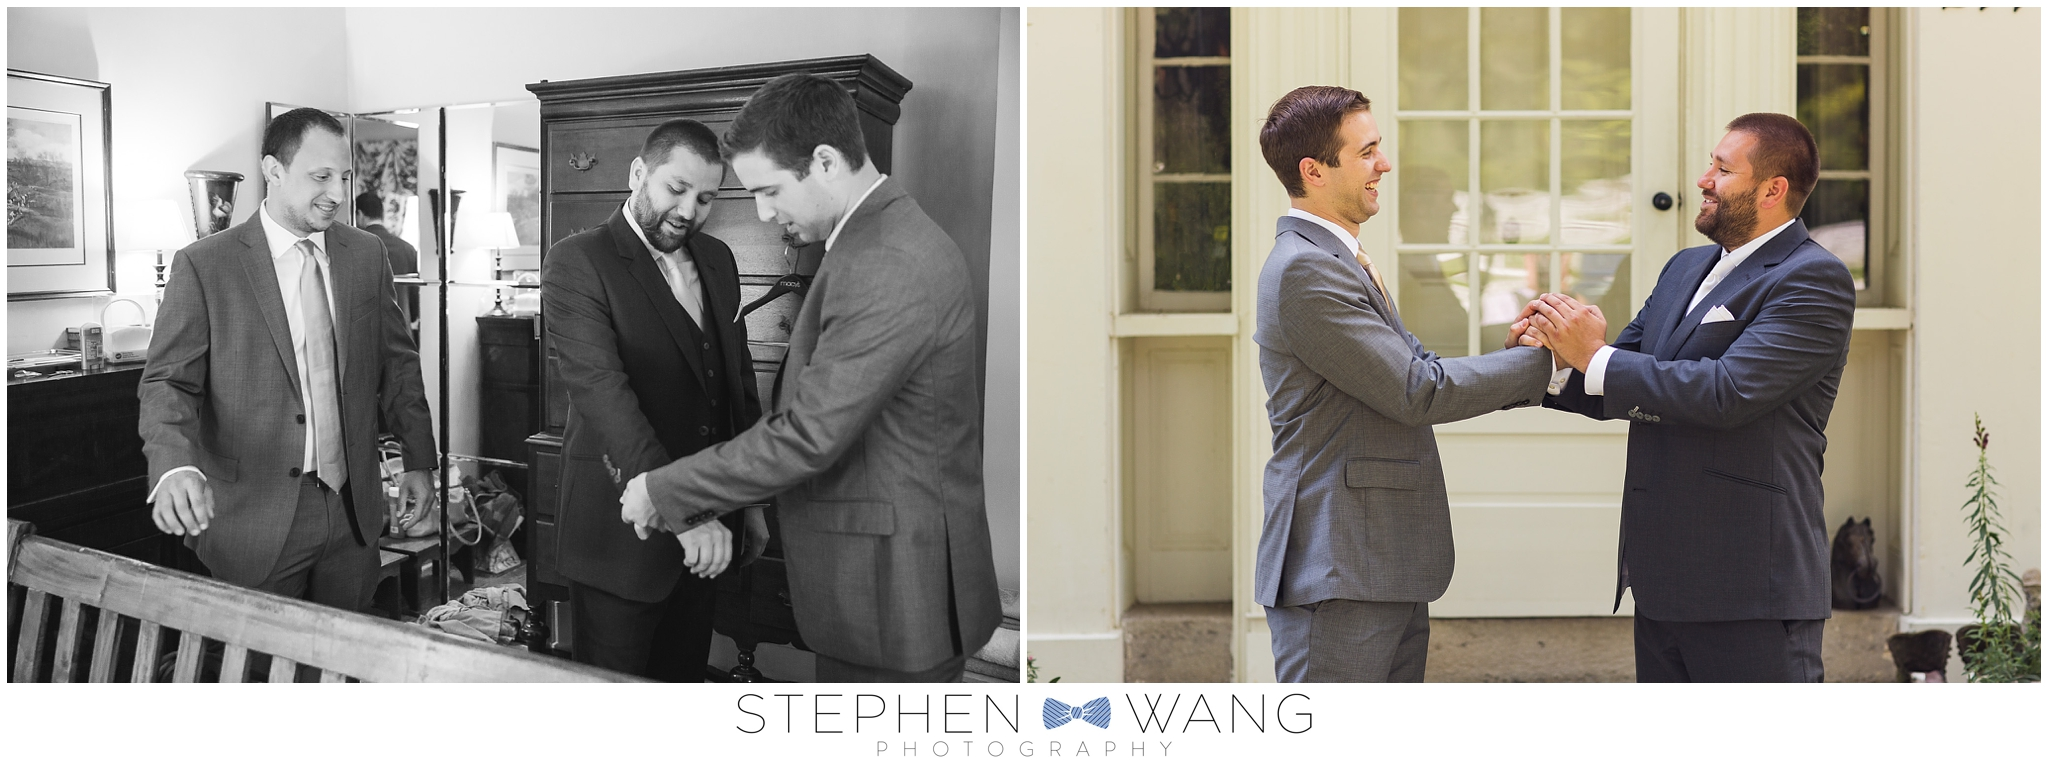 Stephen Wang Photography Connecticut photographer CT Candlelight Farms Inn New Milford CT Summer Wedding New Haven-11-10_0008.jpg